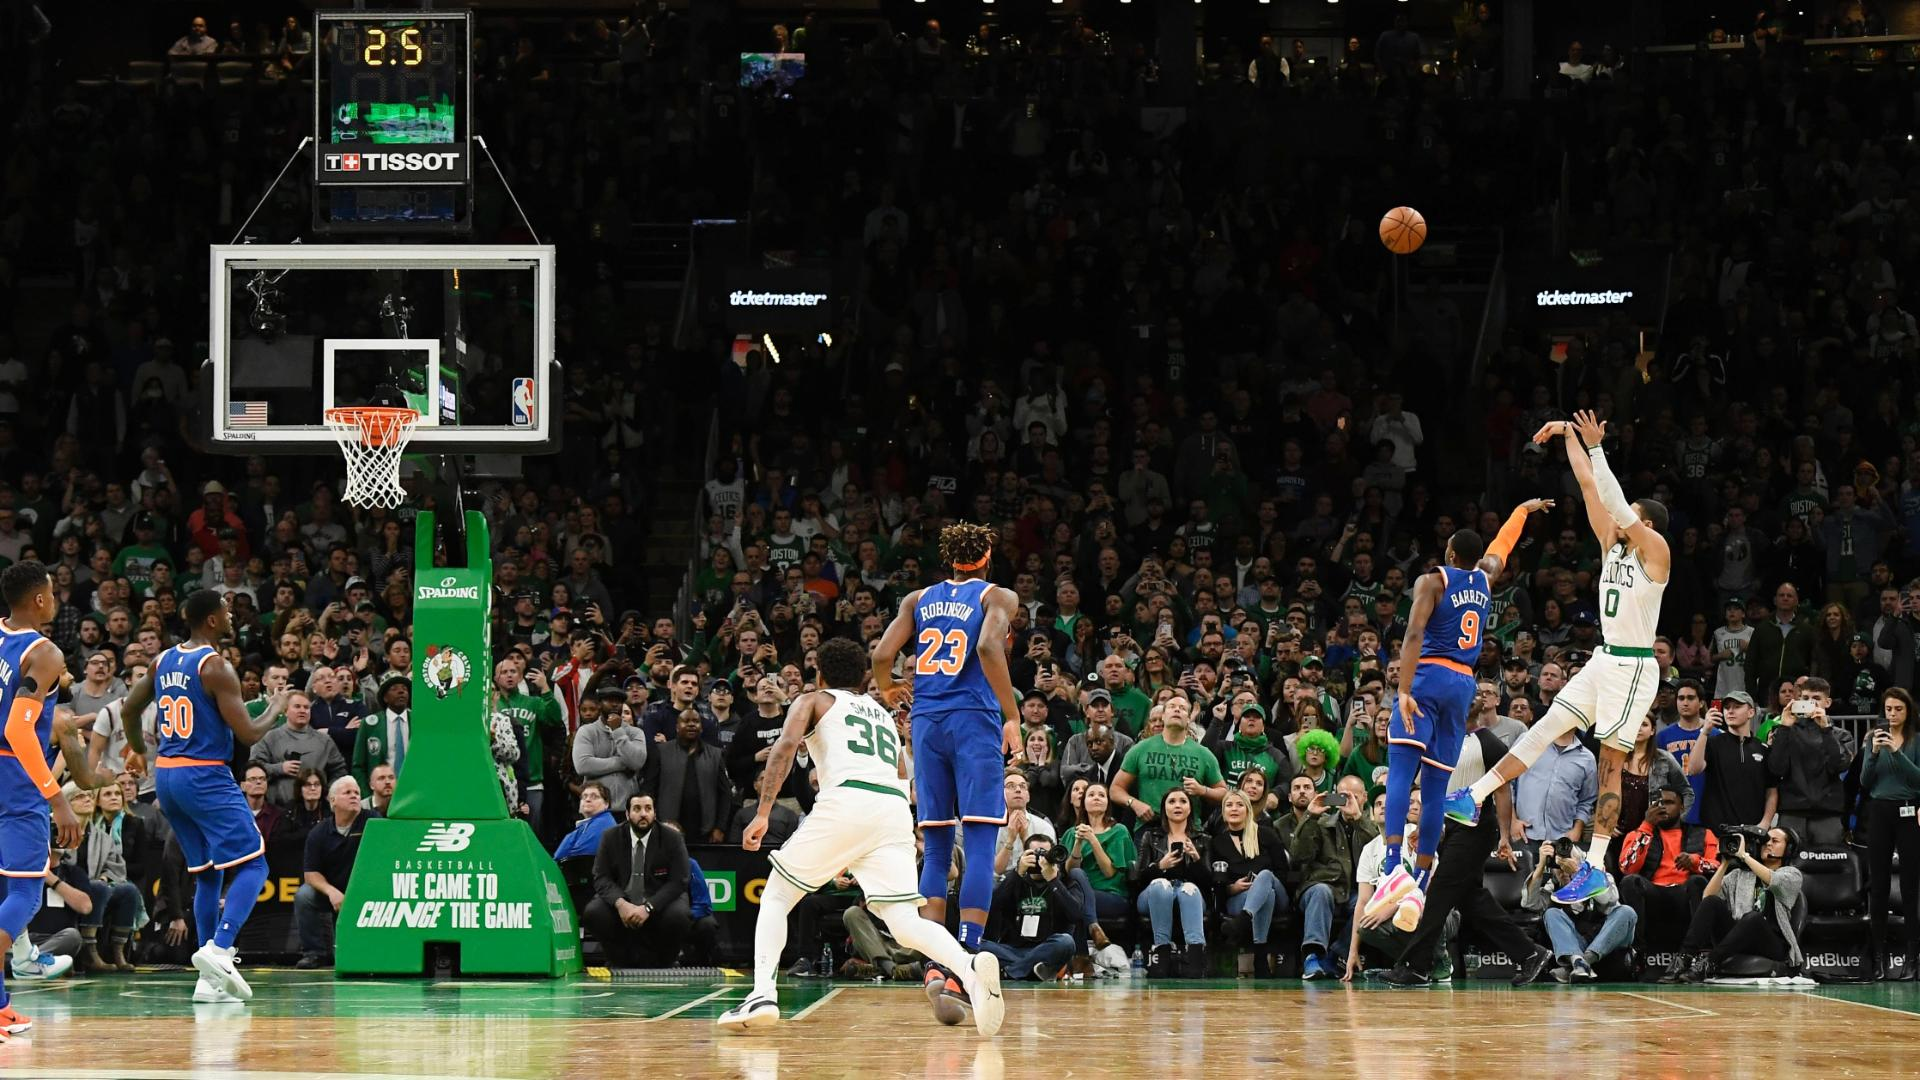 Tatum drills game-winning shot vs. Knicks